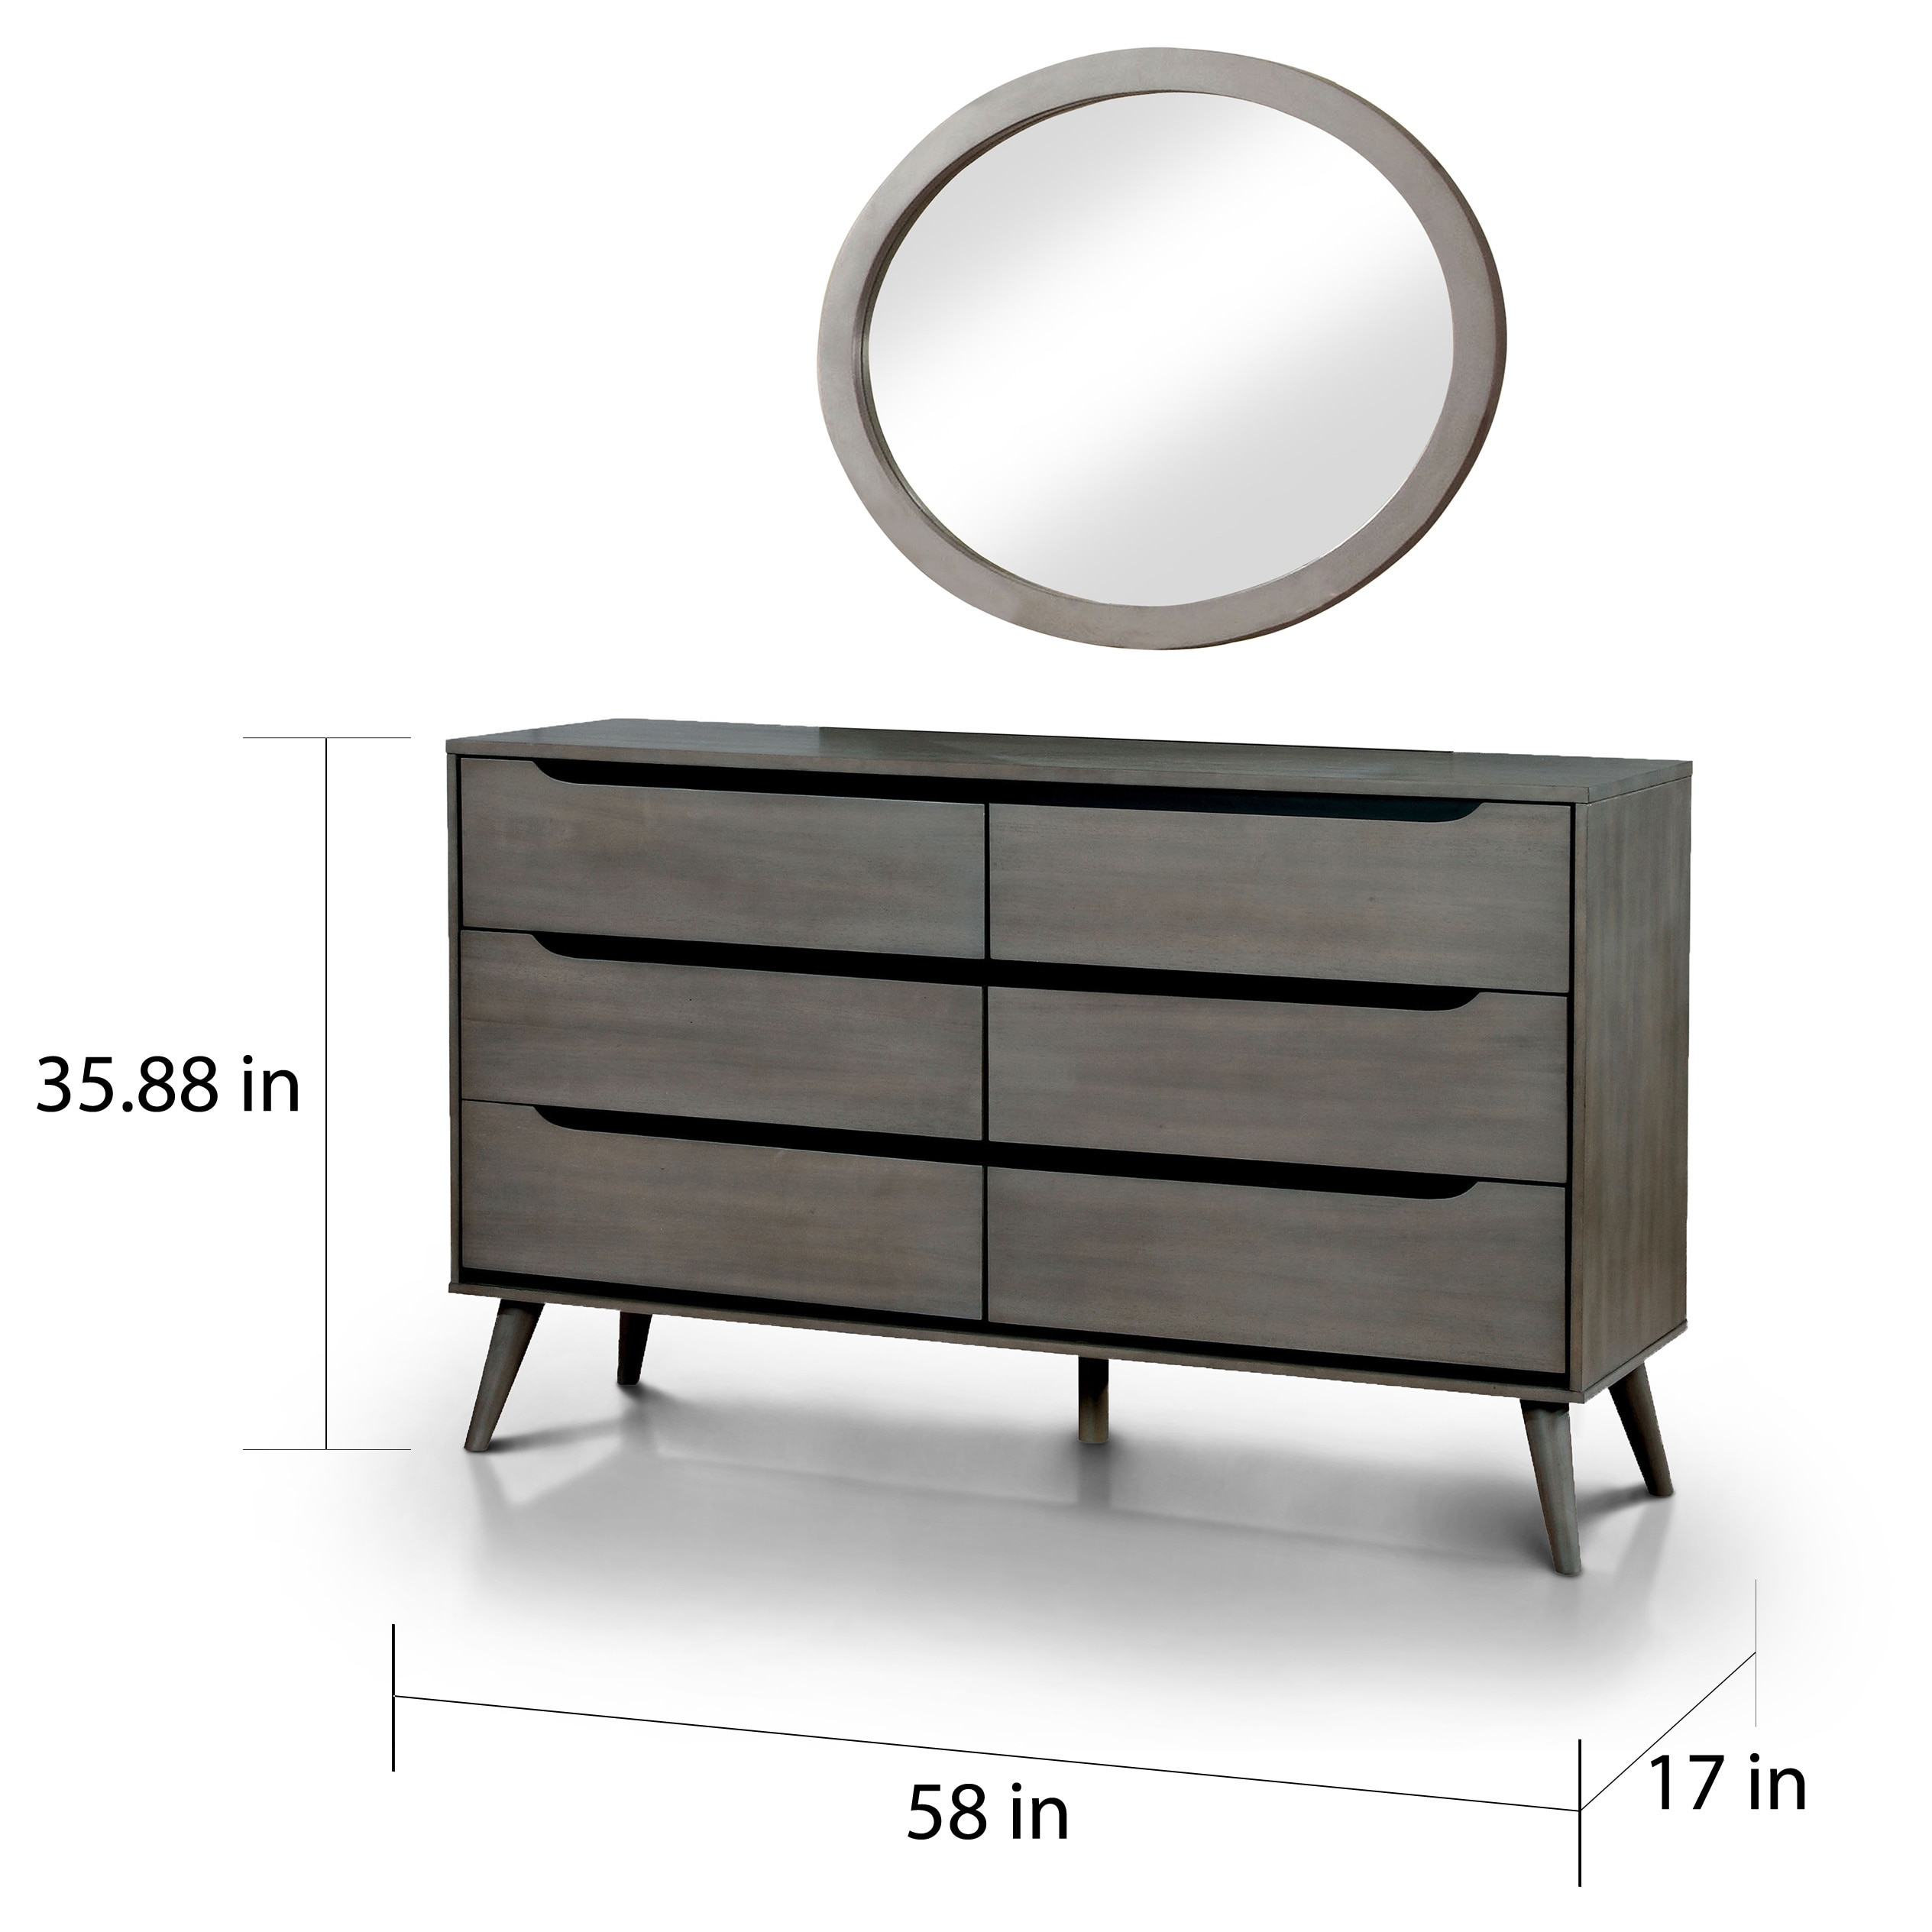 on drawers drawer mirror thin oak large with top dressers uk sale bedroom dresser cheap chest of for mirrored black